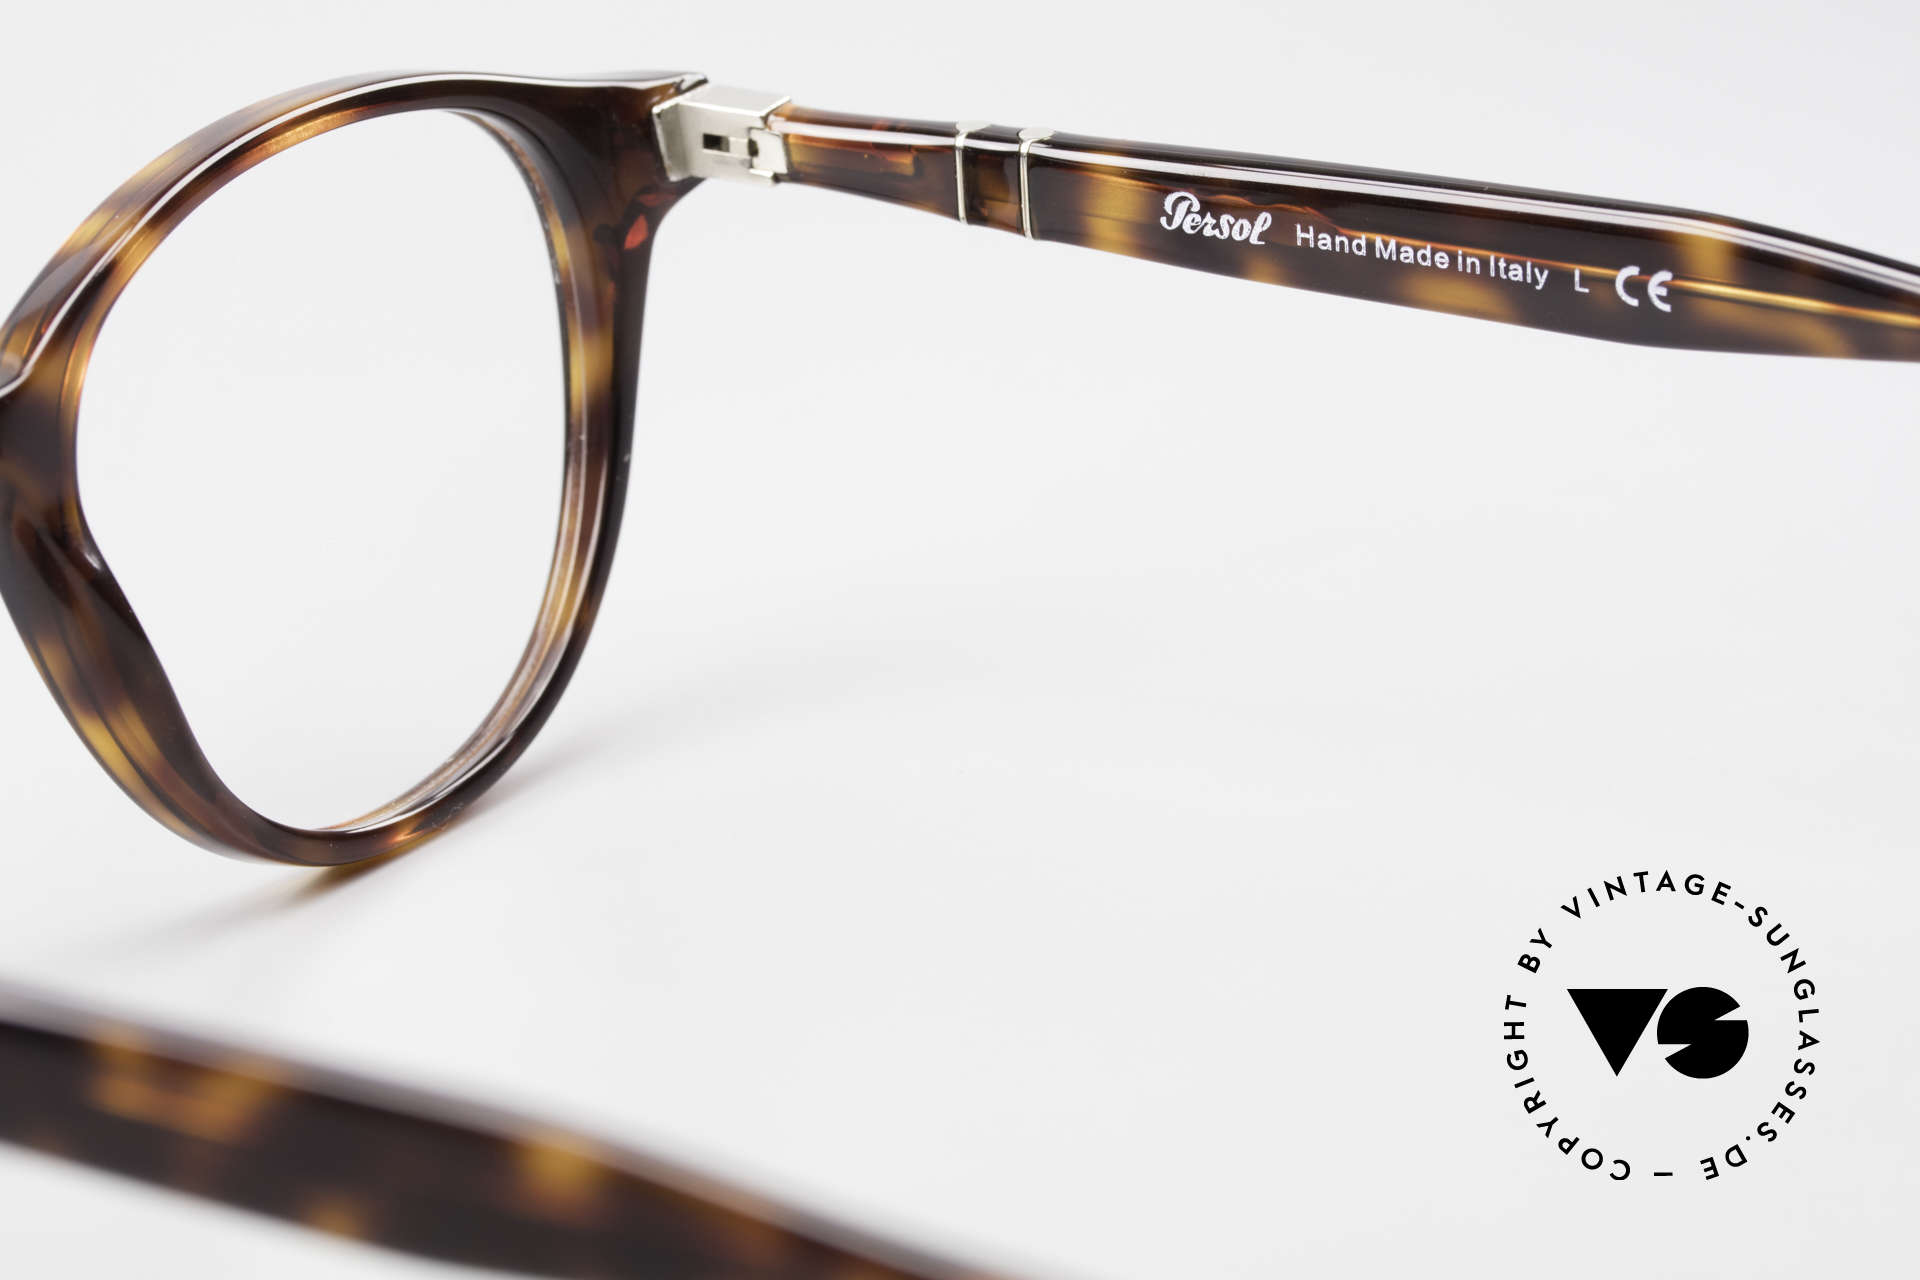 Persol 3153 Timeless Panto Unisex Frame, unisex model = suitable for ladies & gentlemen, Made for Men and Women